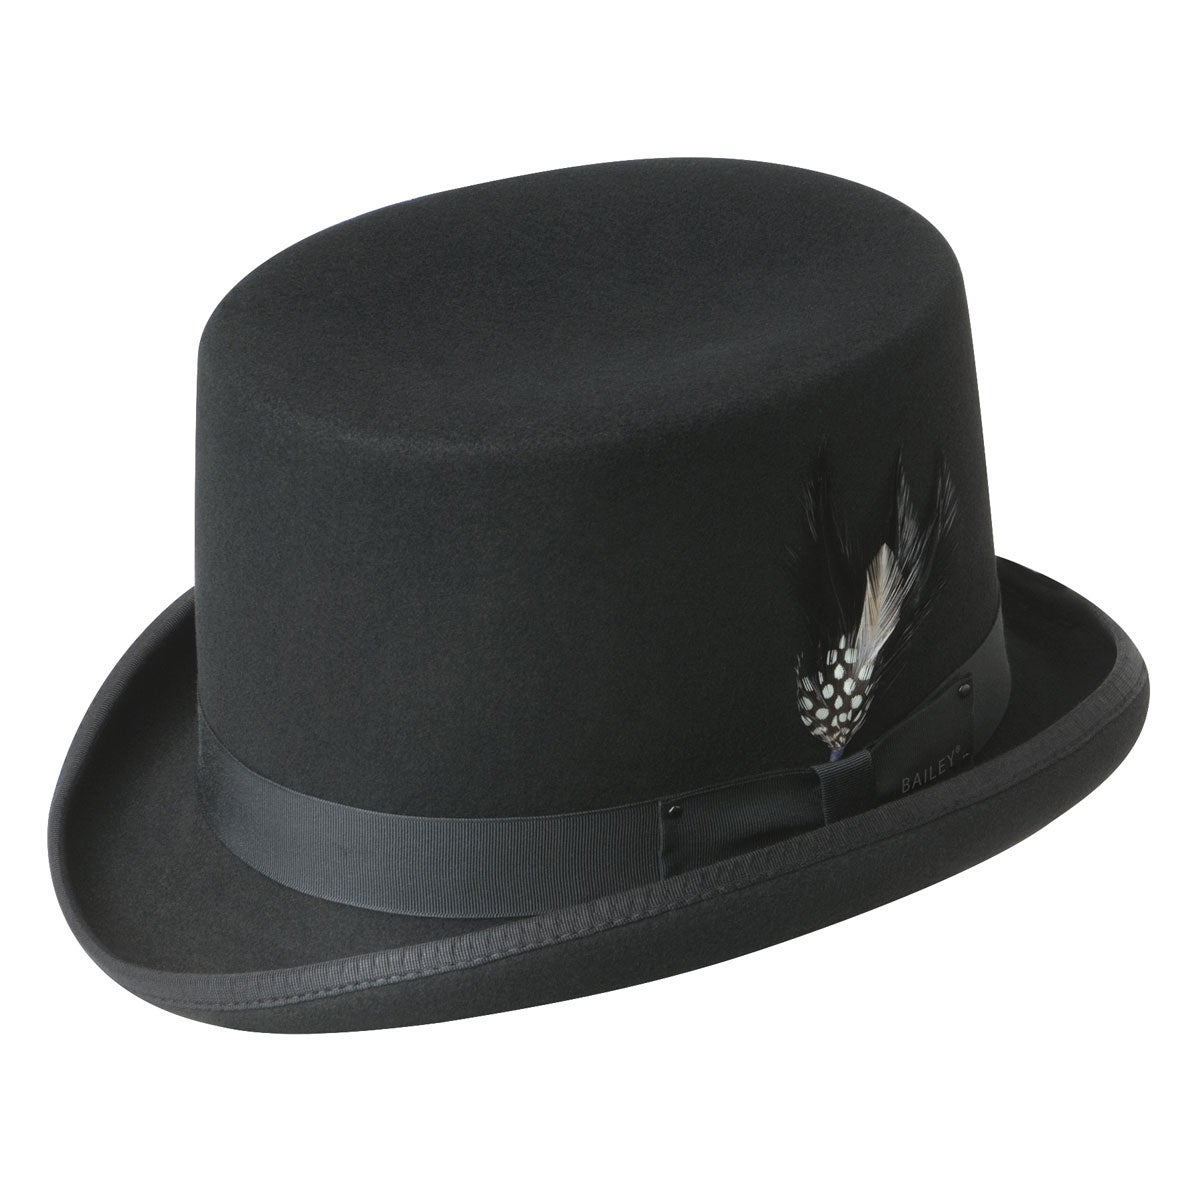 Bailey of Hollywood Ice Top Hat in Black